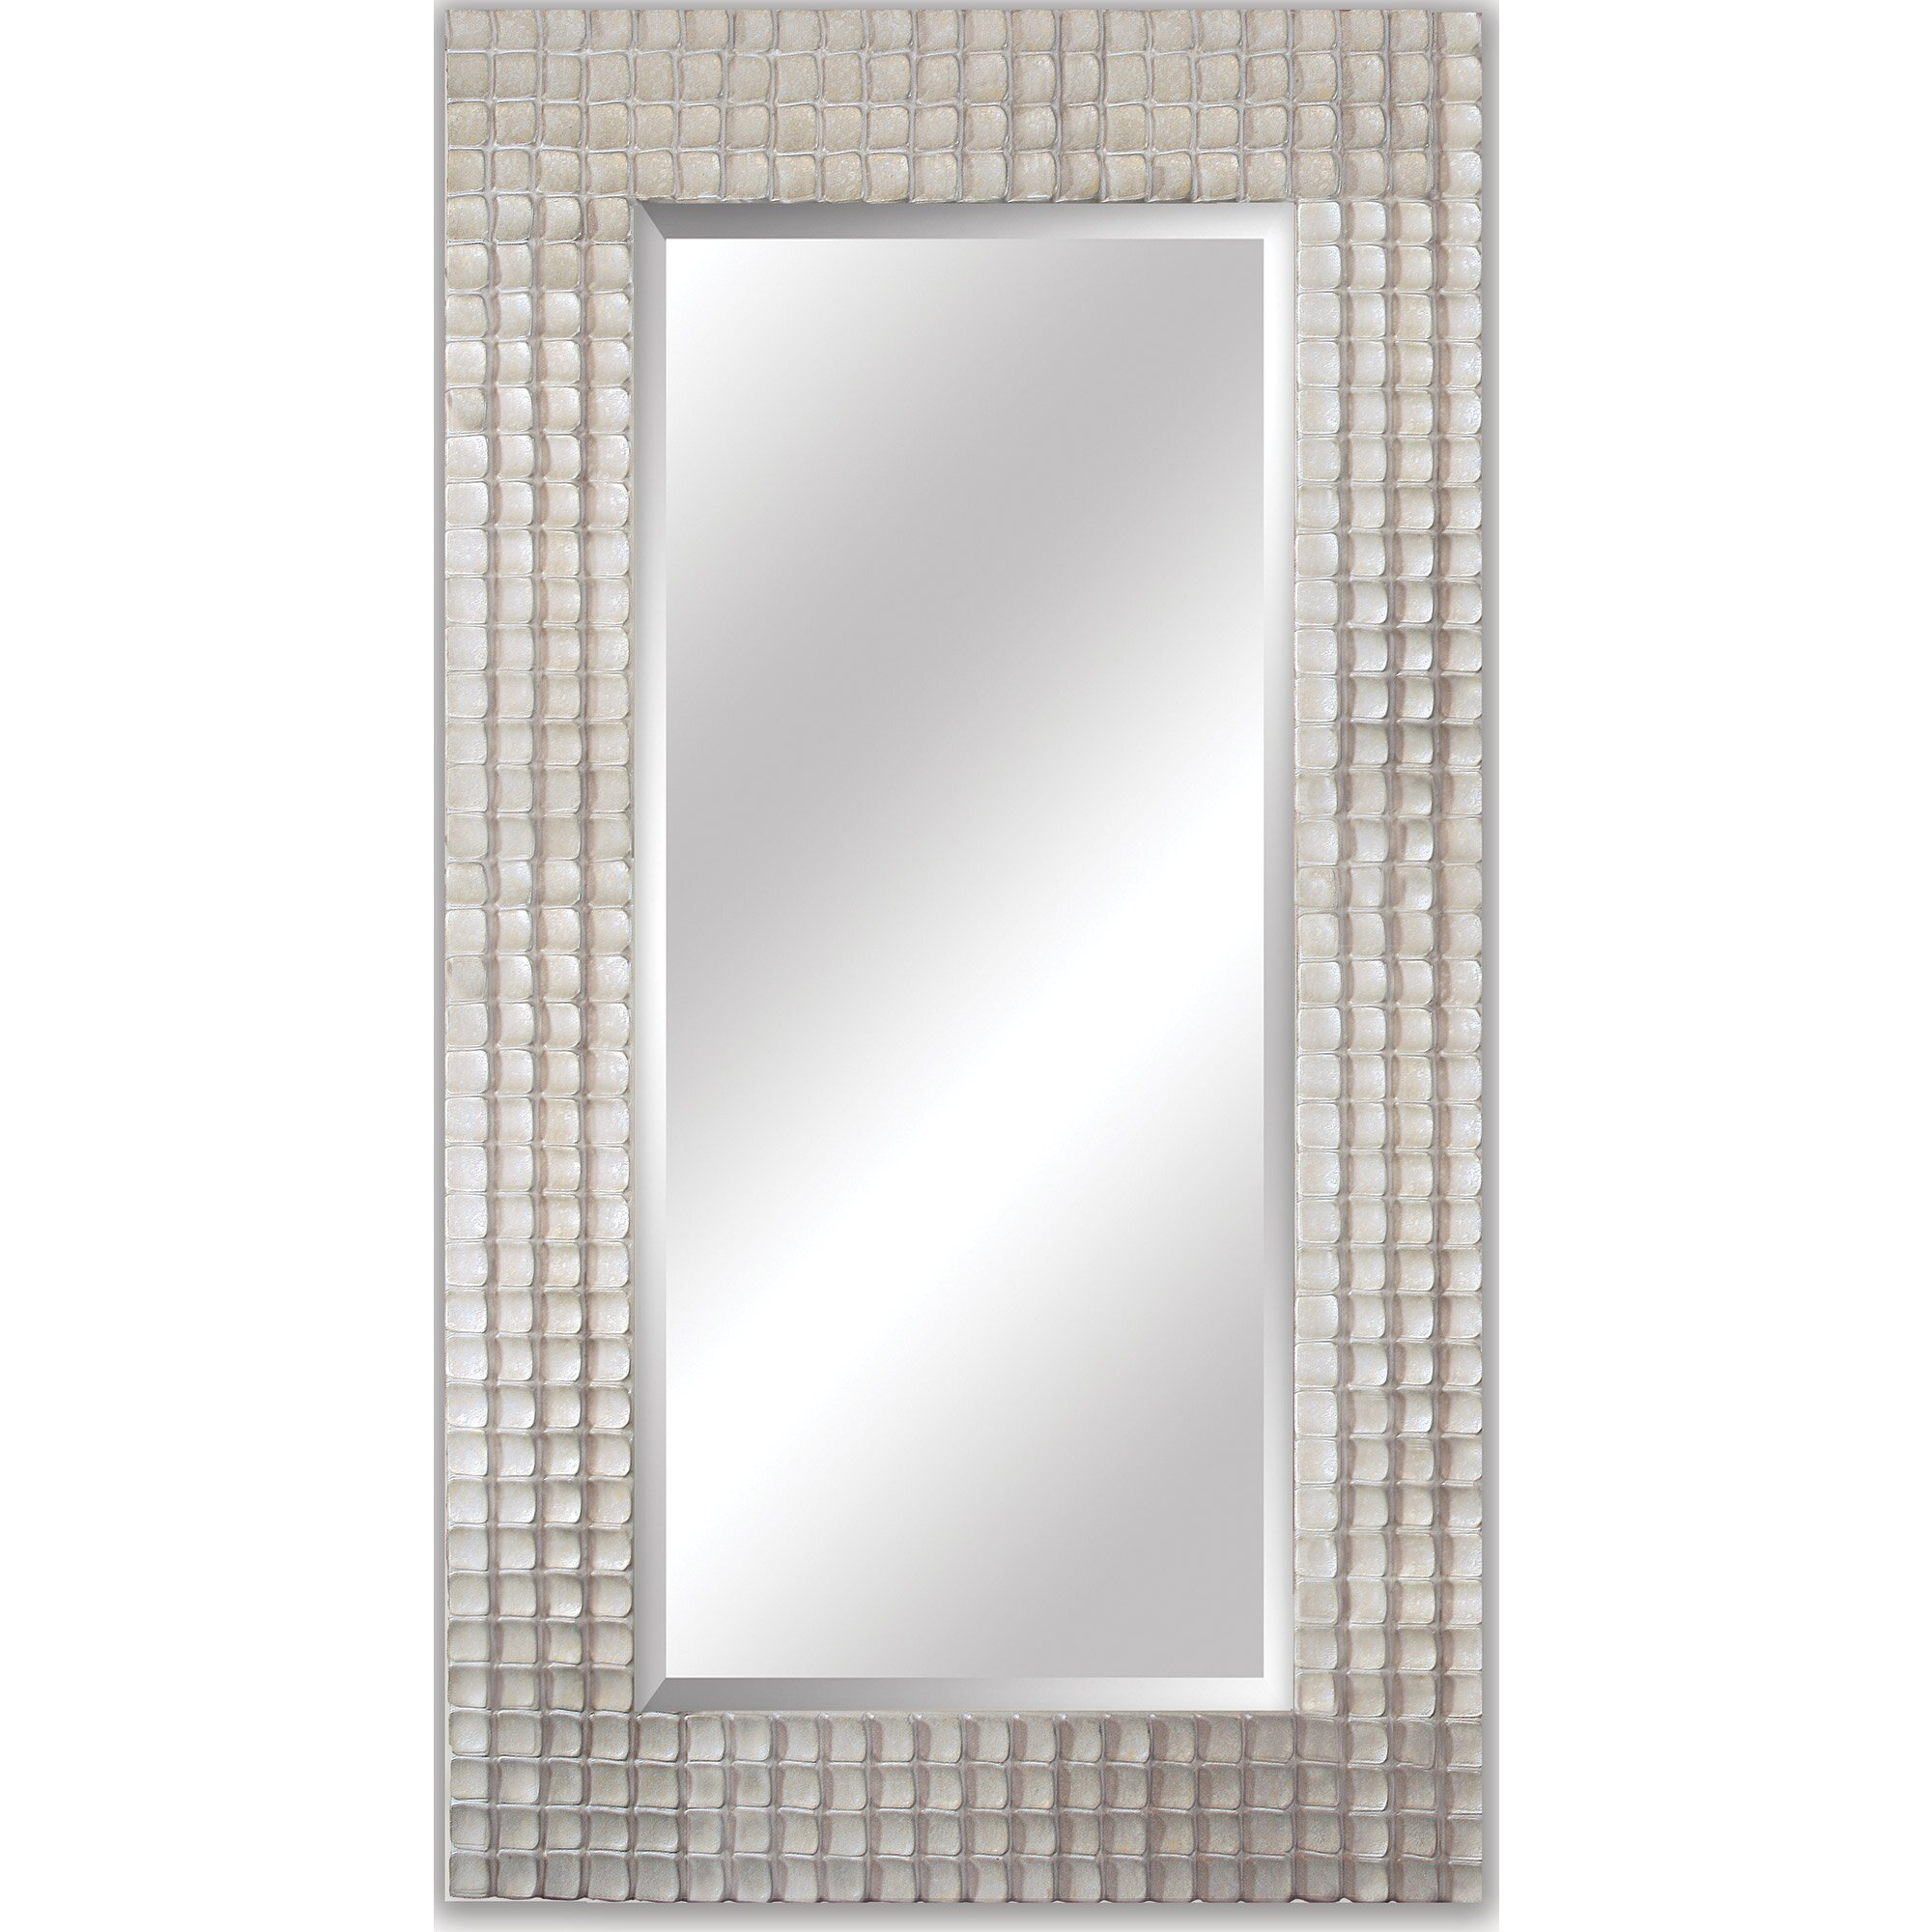 Yosemite home decor framed wall mirror reviews wayfair - Wall decor mirror home accents ...